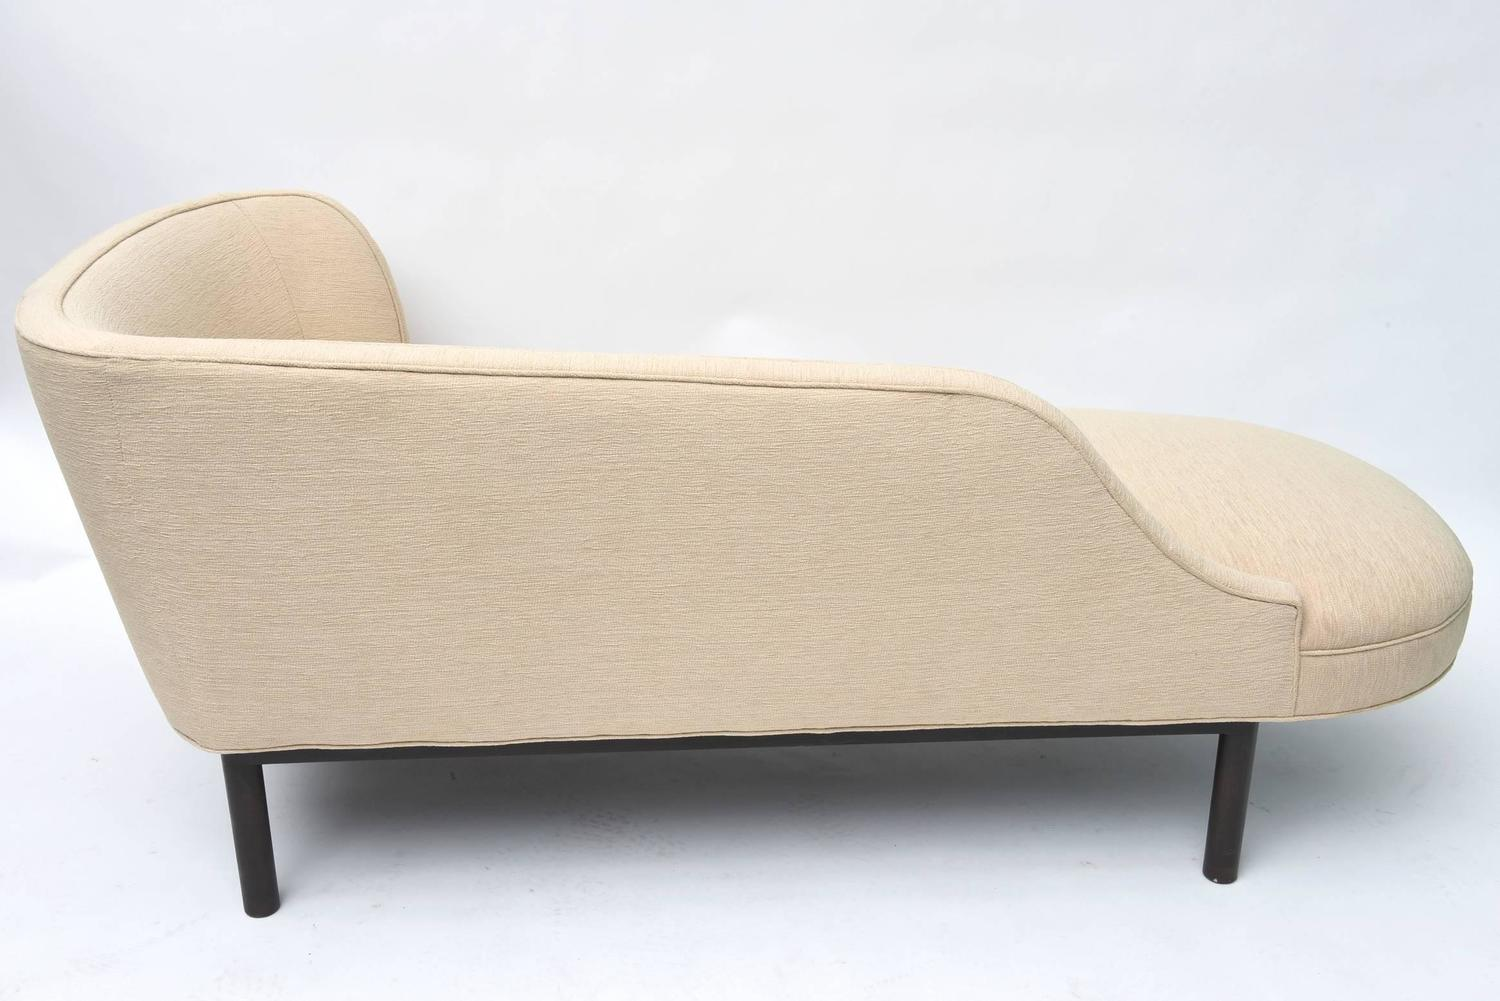 Edward wormley chaise longue at 1stdibs for 1 zitsbank met chaise longue